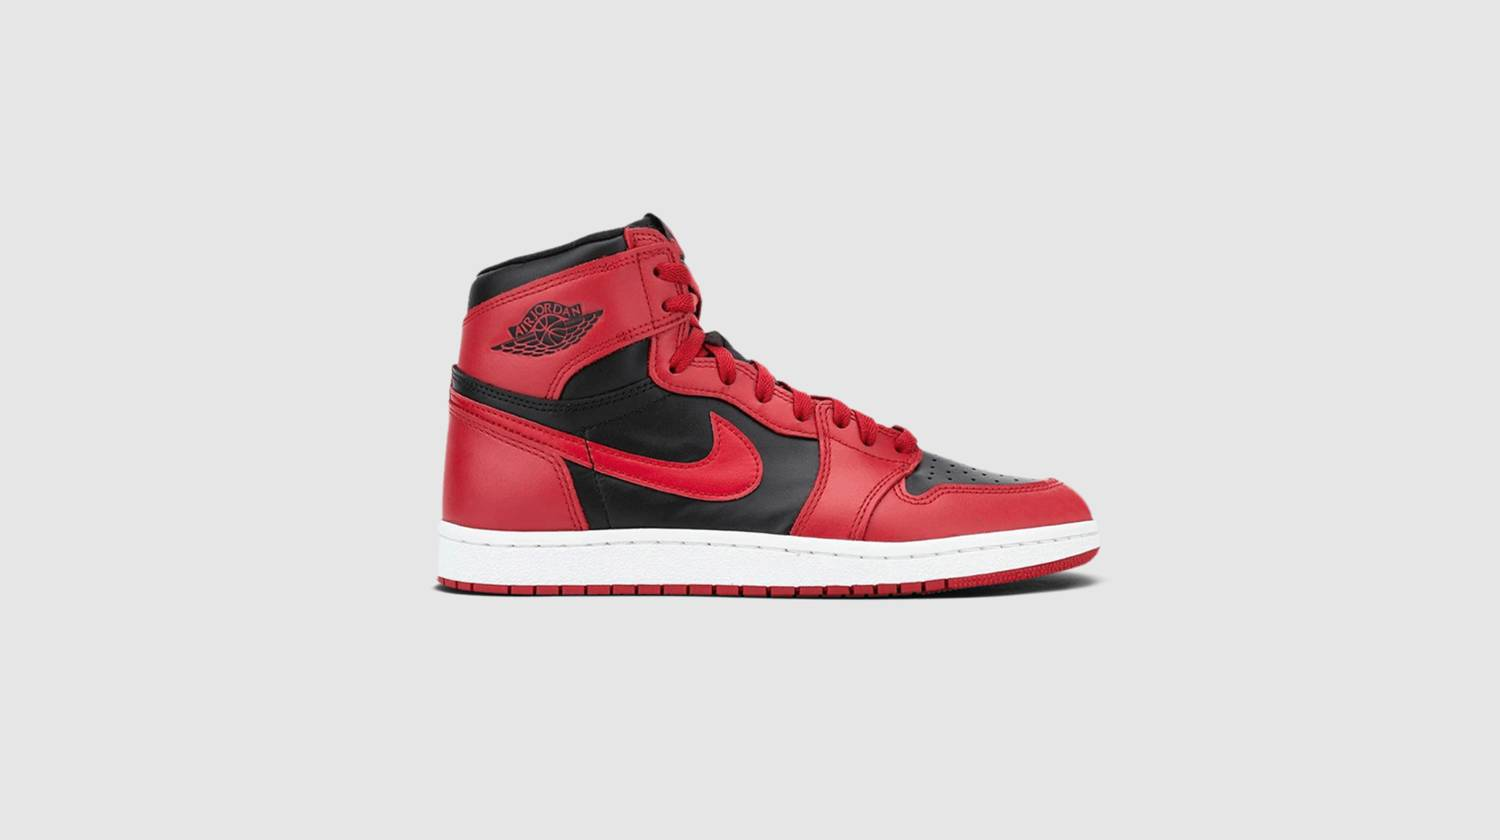 Top Rep Sneaker Air Jordan 1 Retro High 85 Varsity Red